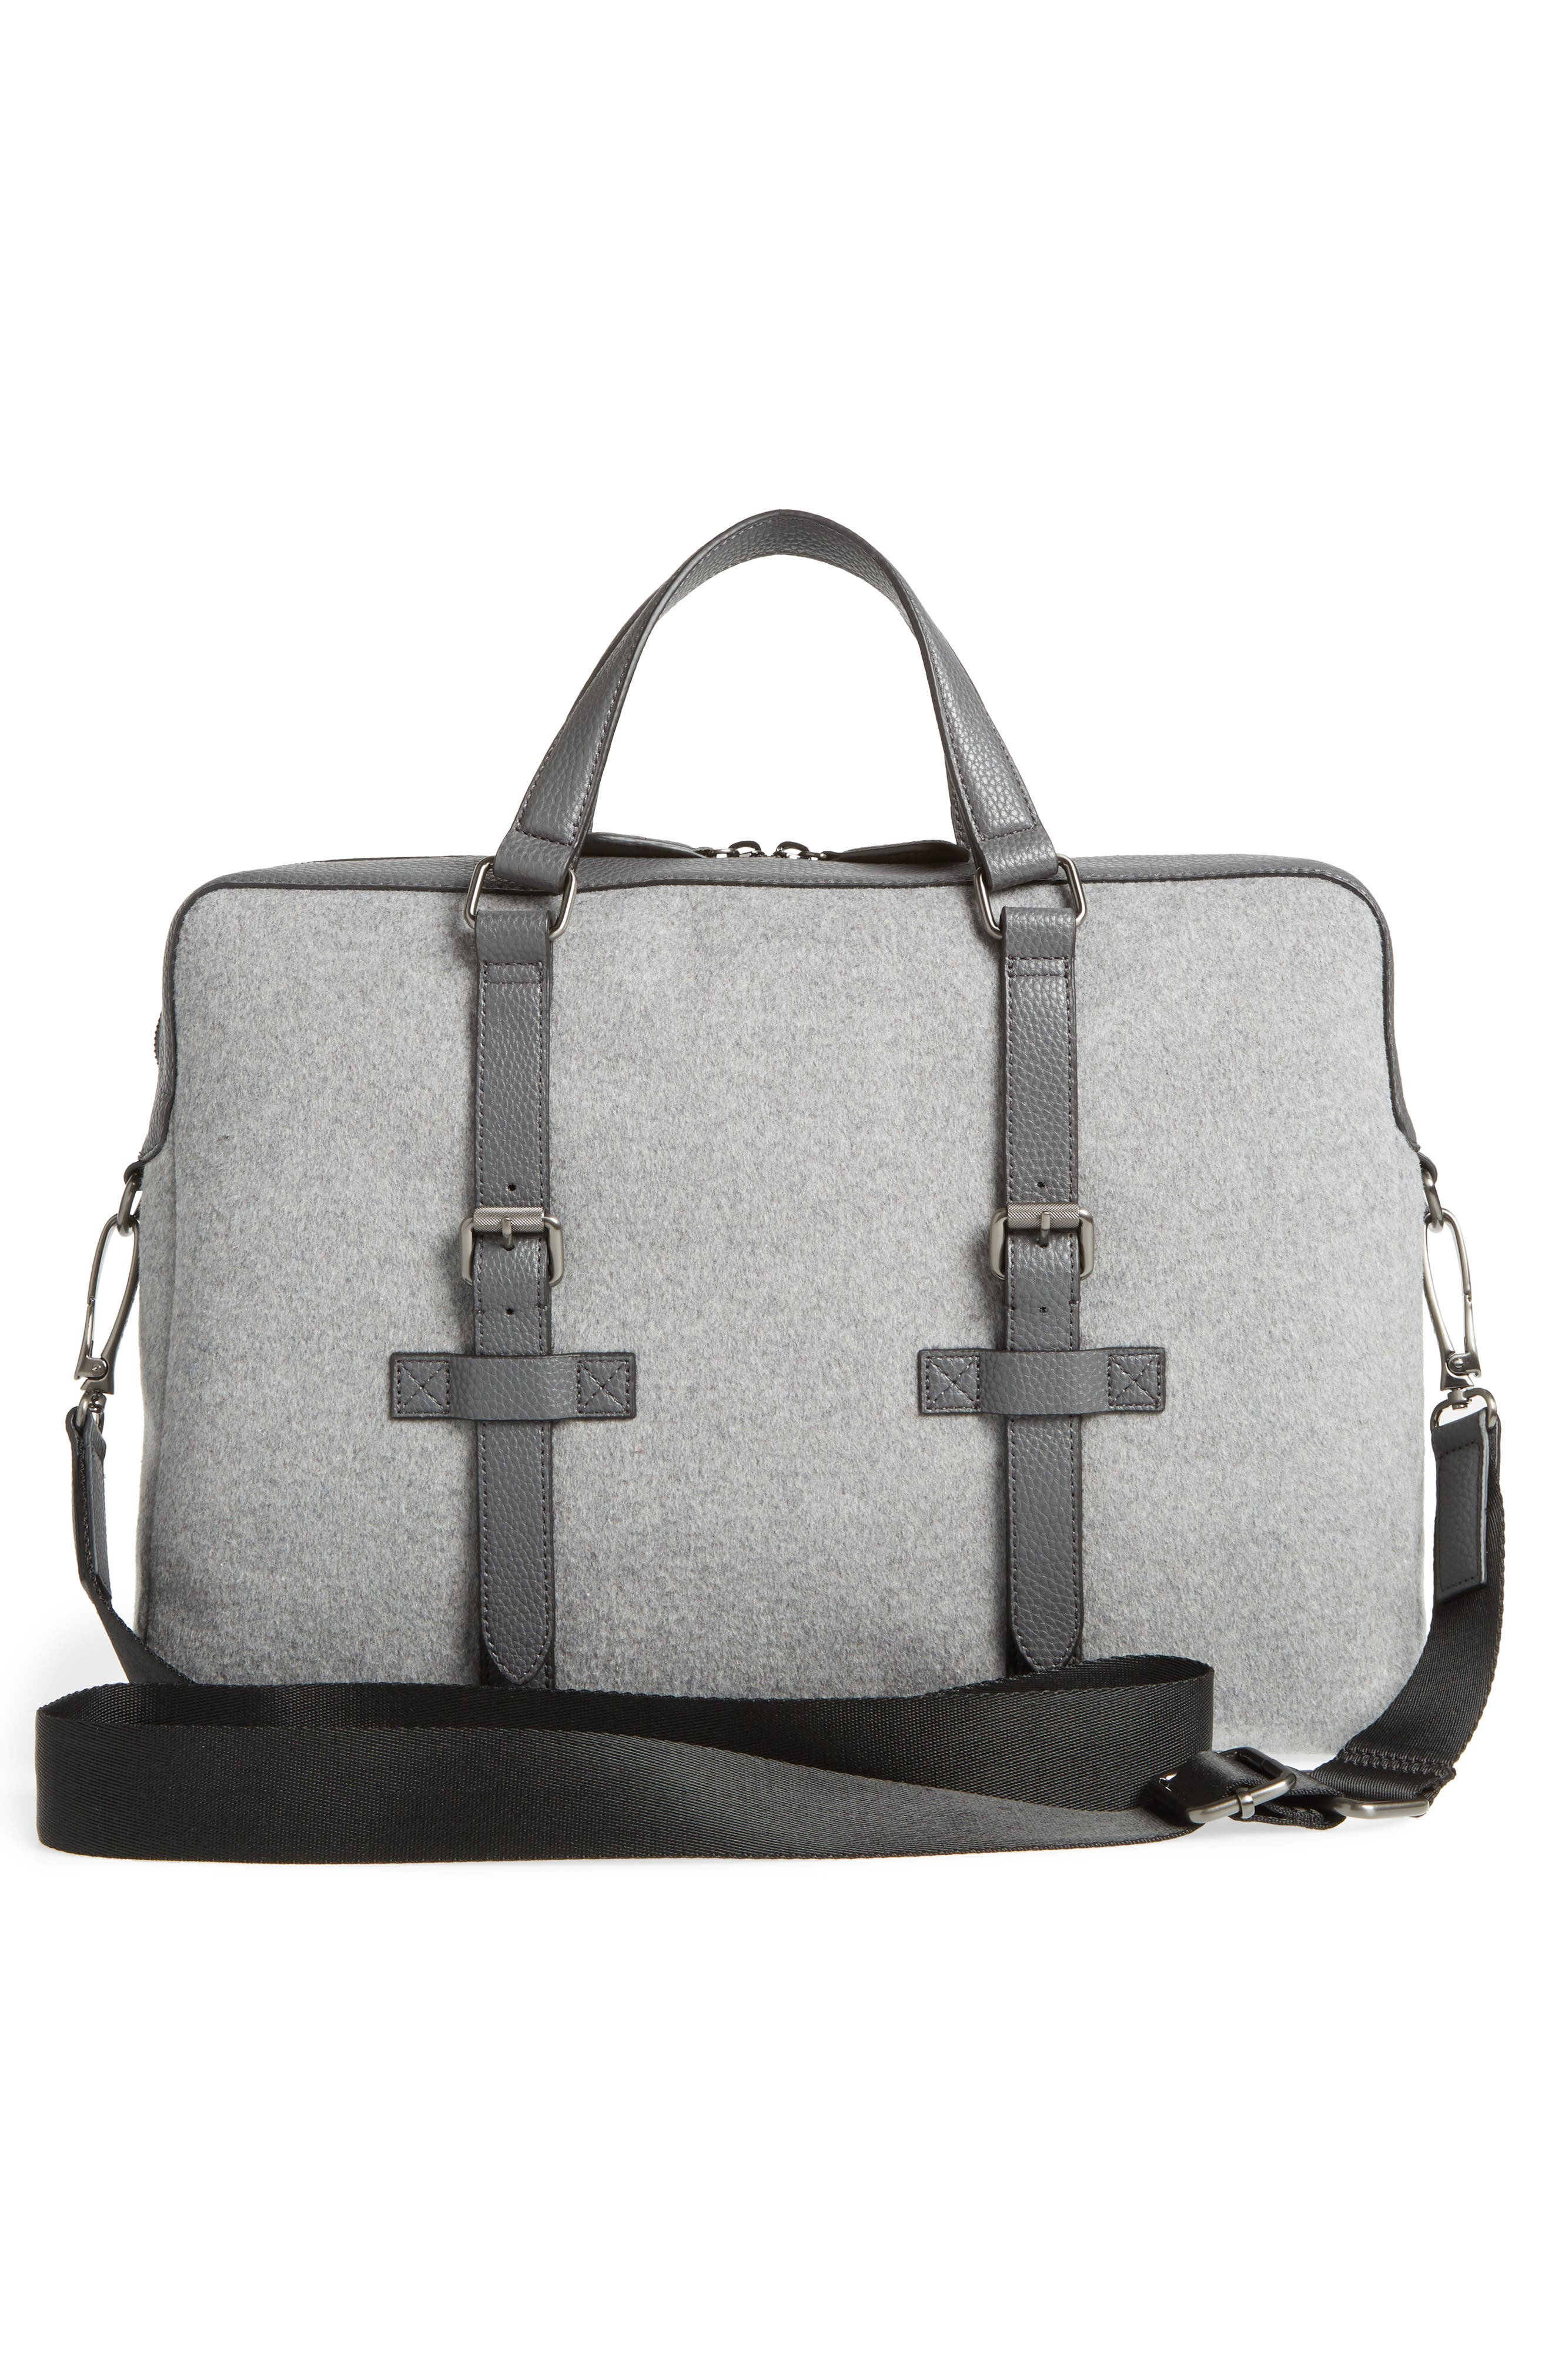 TED BAKER LONDON, Cabble Briefcase, Alternate thumbnail 3, color, 030